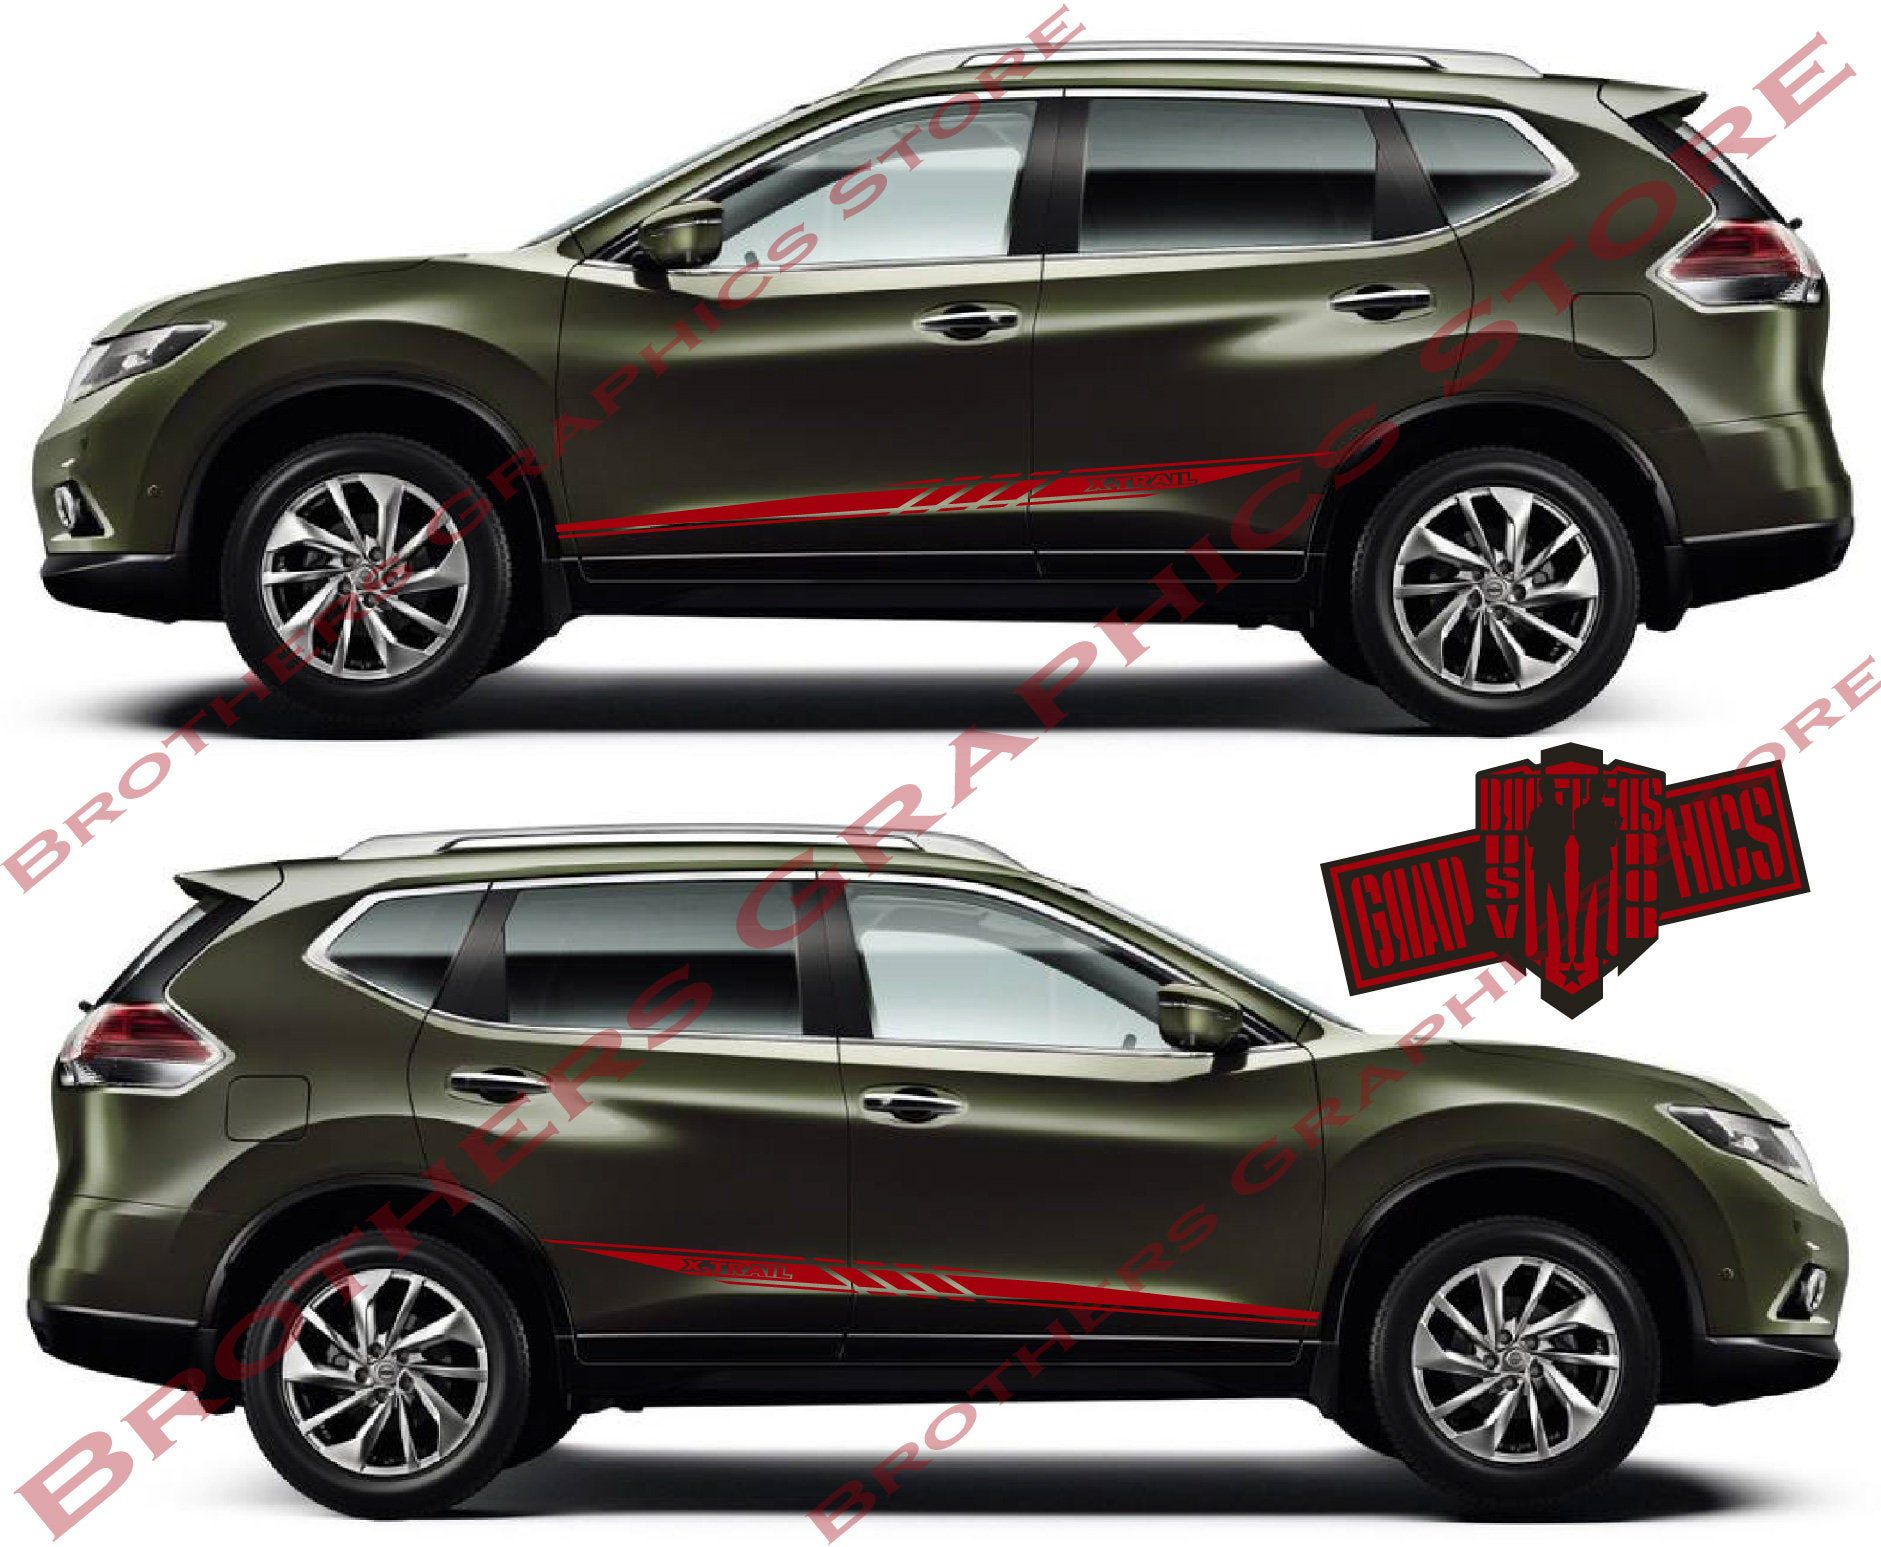 2X Set Of Stickers Decal For Nissan X-Trail Stripe Body Kit Sport Side Door Sticker Sport Design 2X Set of Stickers Decal for Nissan X-Trail Stripe body kit Sport Side door sticker sport design Black Things nissan x trail black color